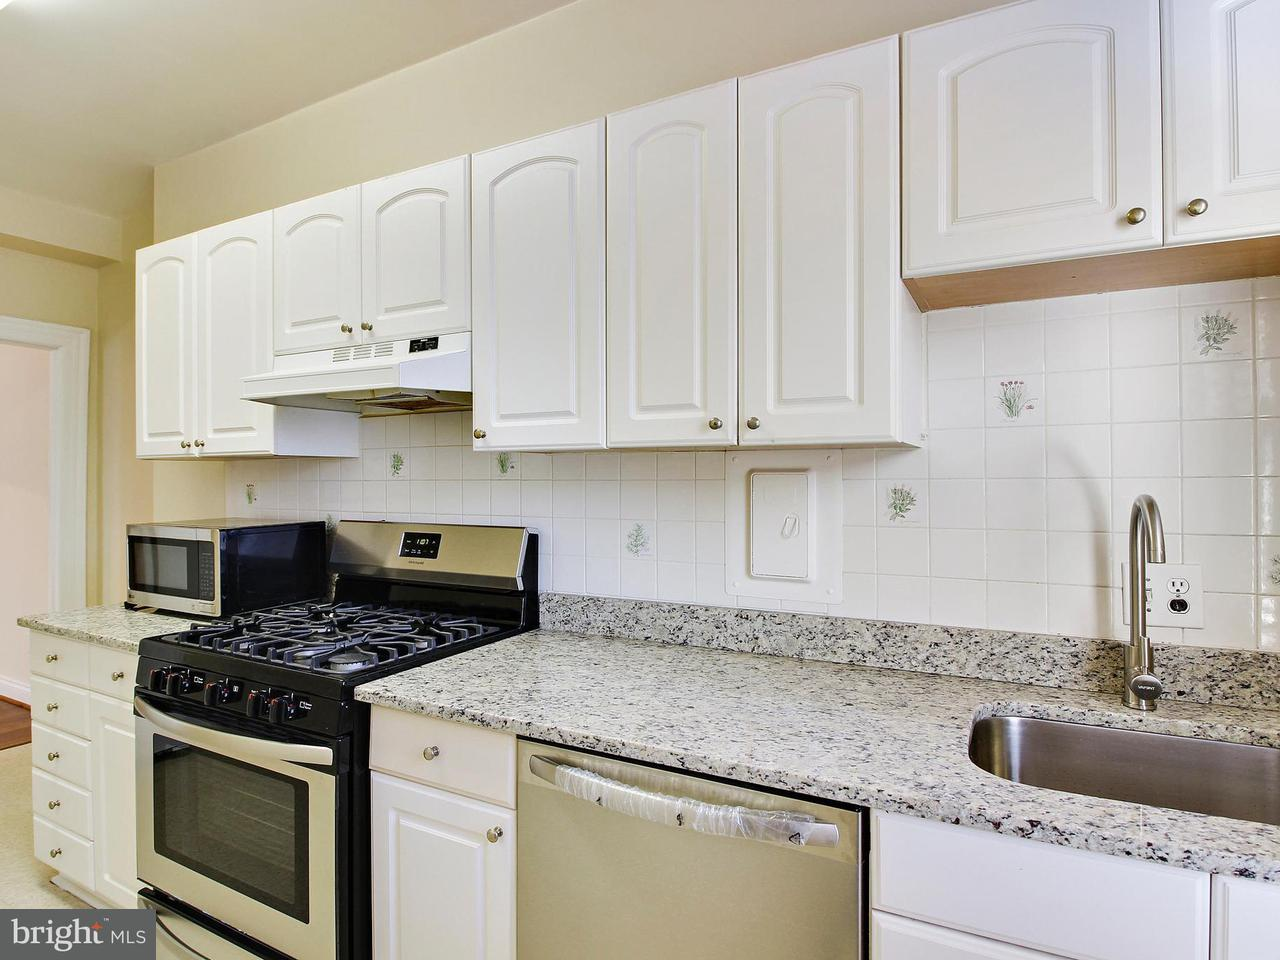 Additional photo for property listing at 3100 Connecticut Ave Nw #340 3100 Connecticut Ave Nw #340 Washington, District De Columbia 20008 États-Unis